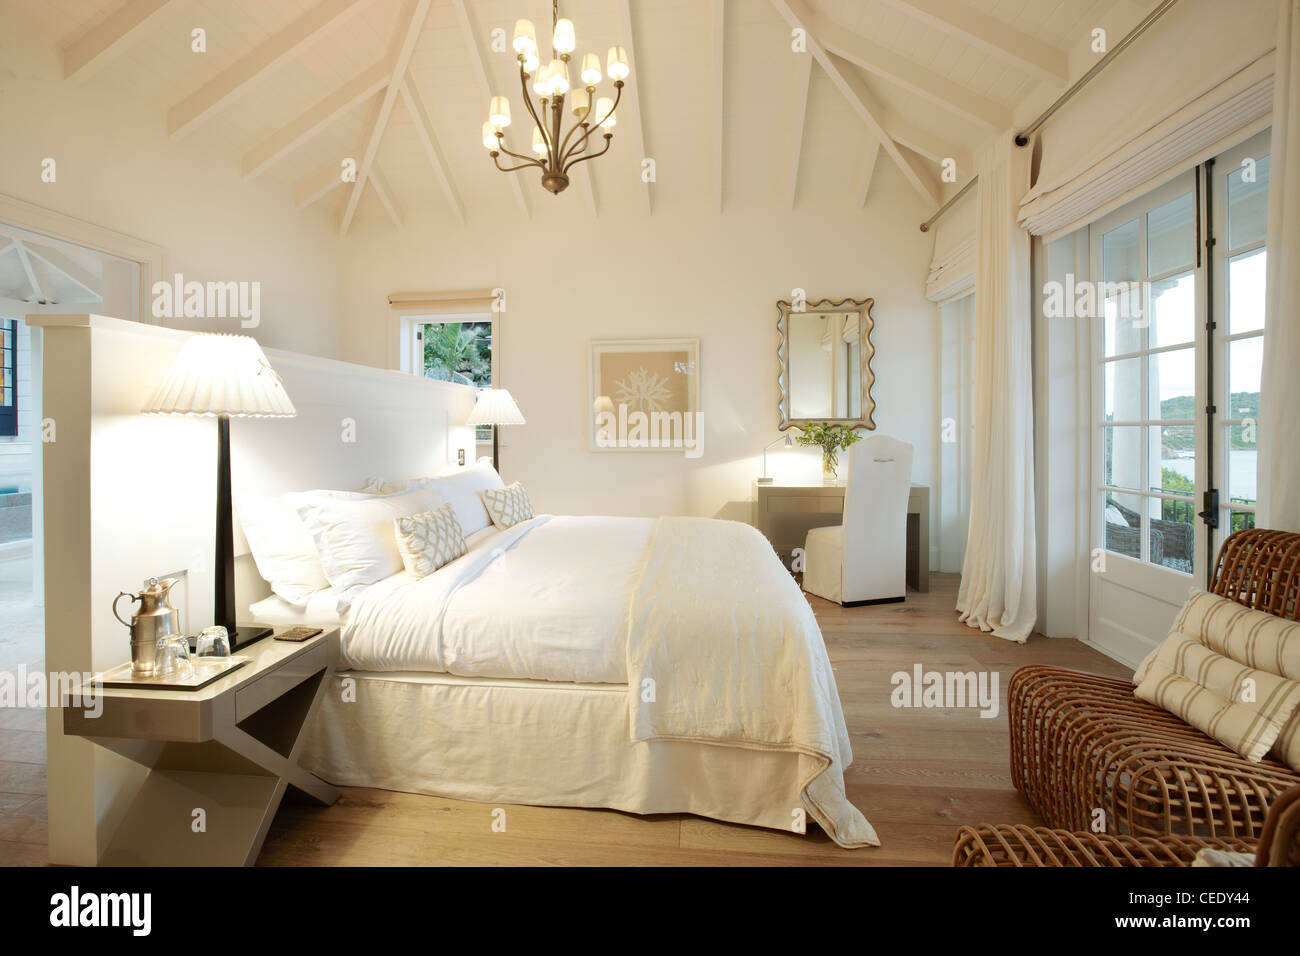 sunrise master bedroom suite - Stock Image